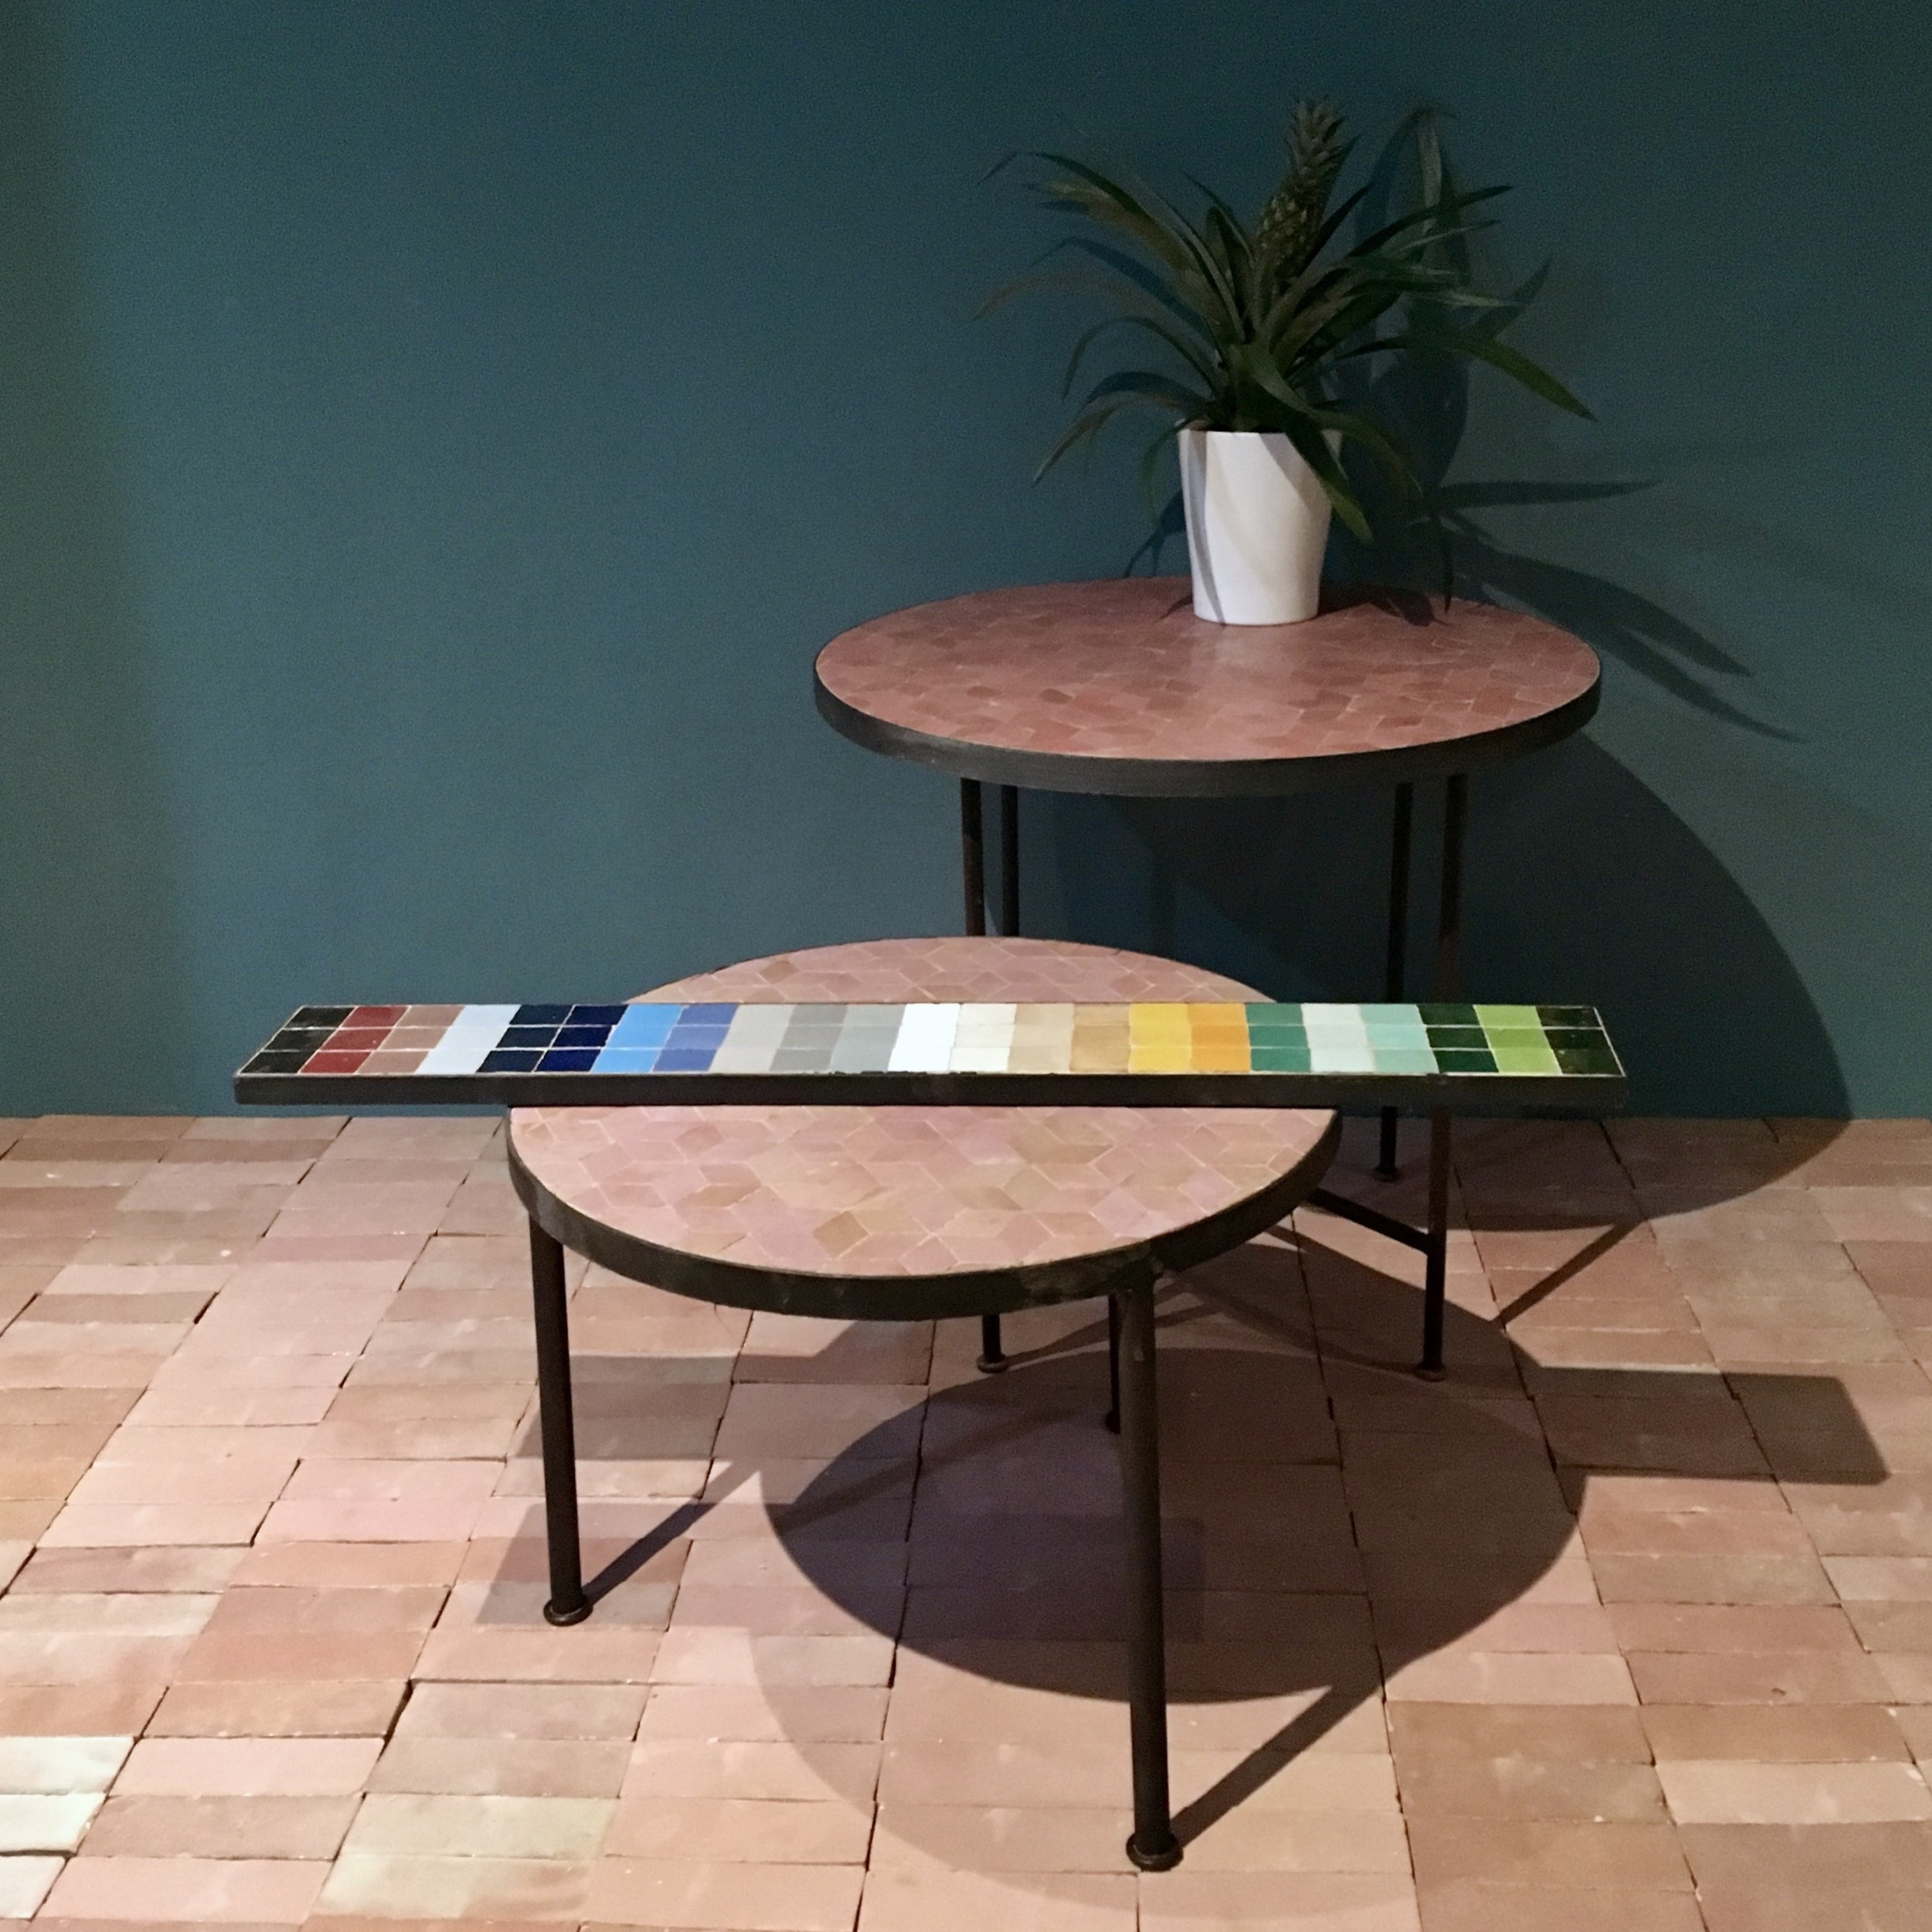 Table d'appoint Motif Cube artetsud